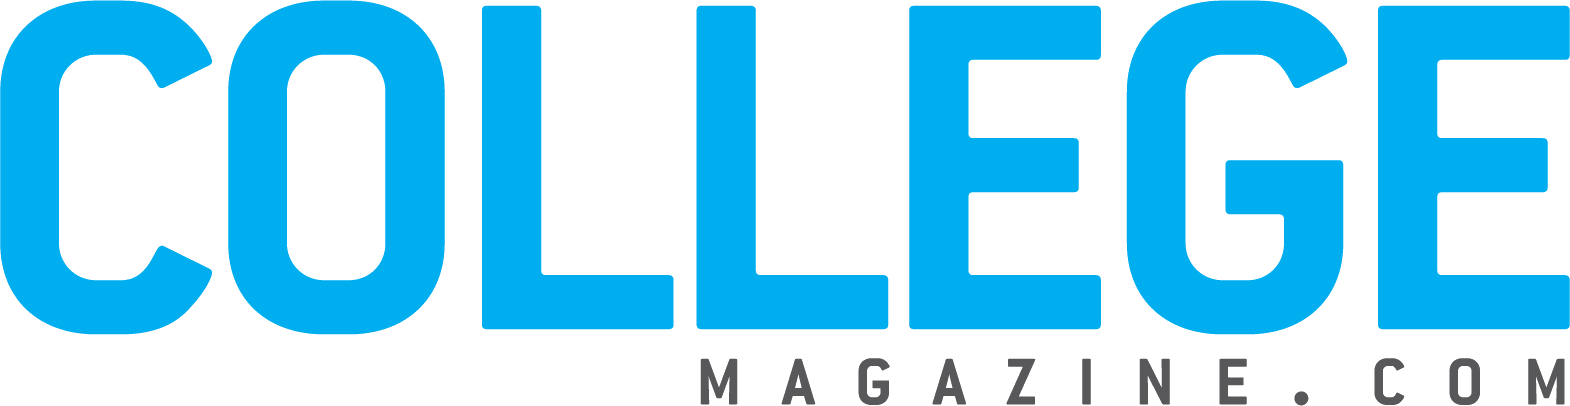 Image result for COLLEGE MAGAZINE LOGO